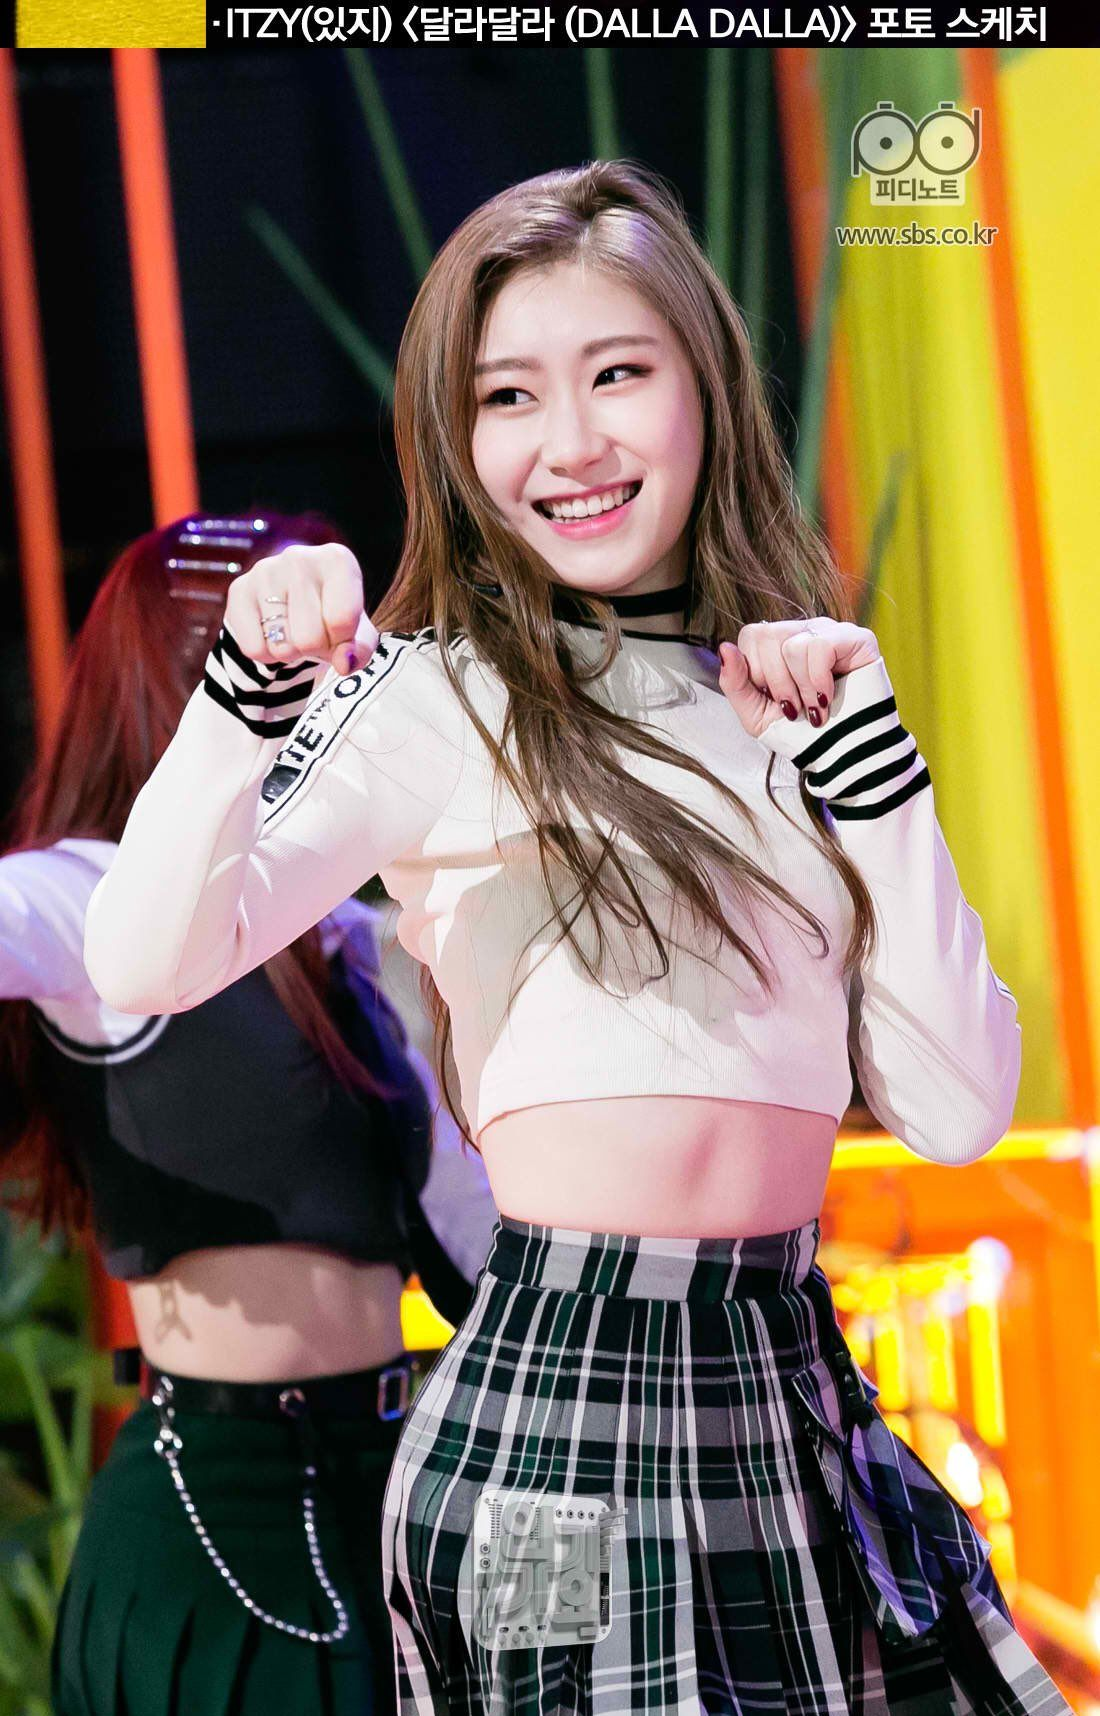 Itzy Global Notshy On Twitter Itzy Kpop Girls Stage Outfits